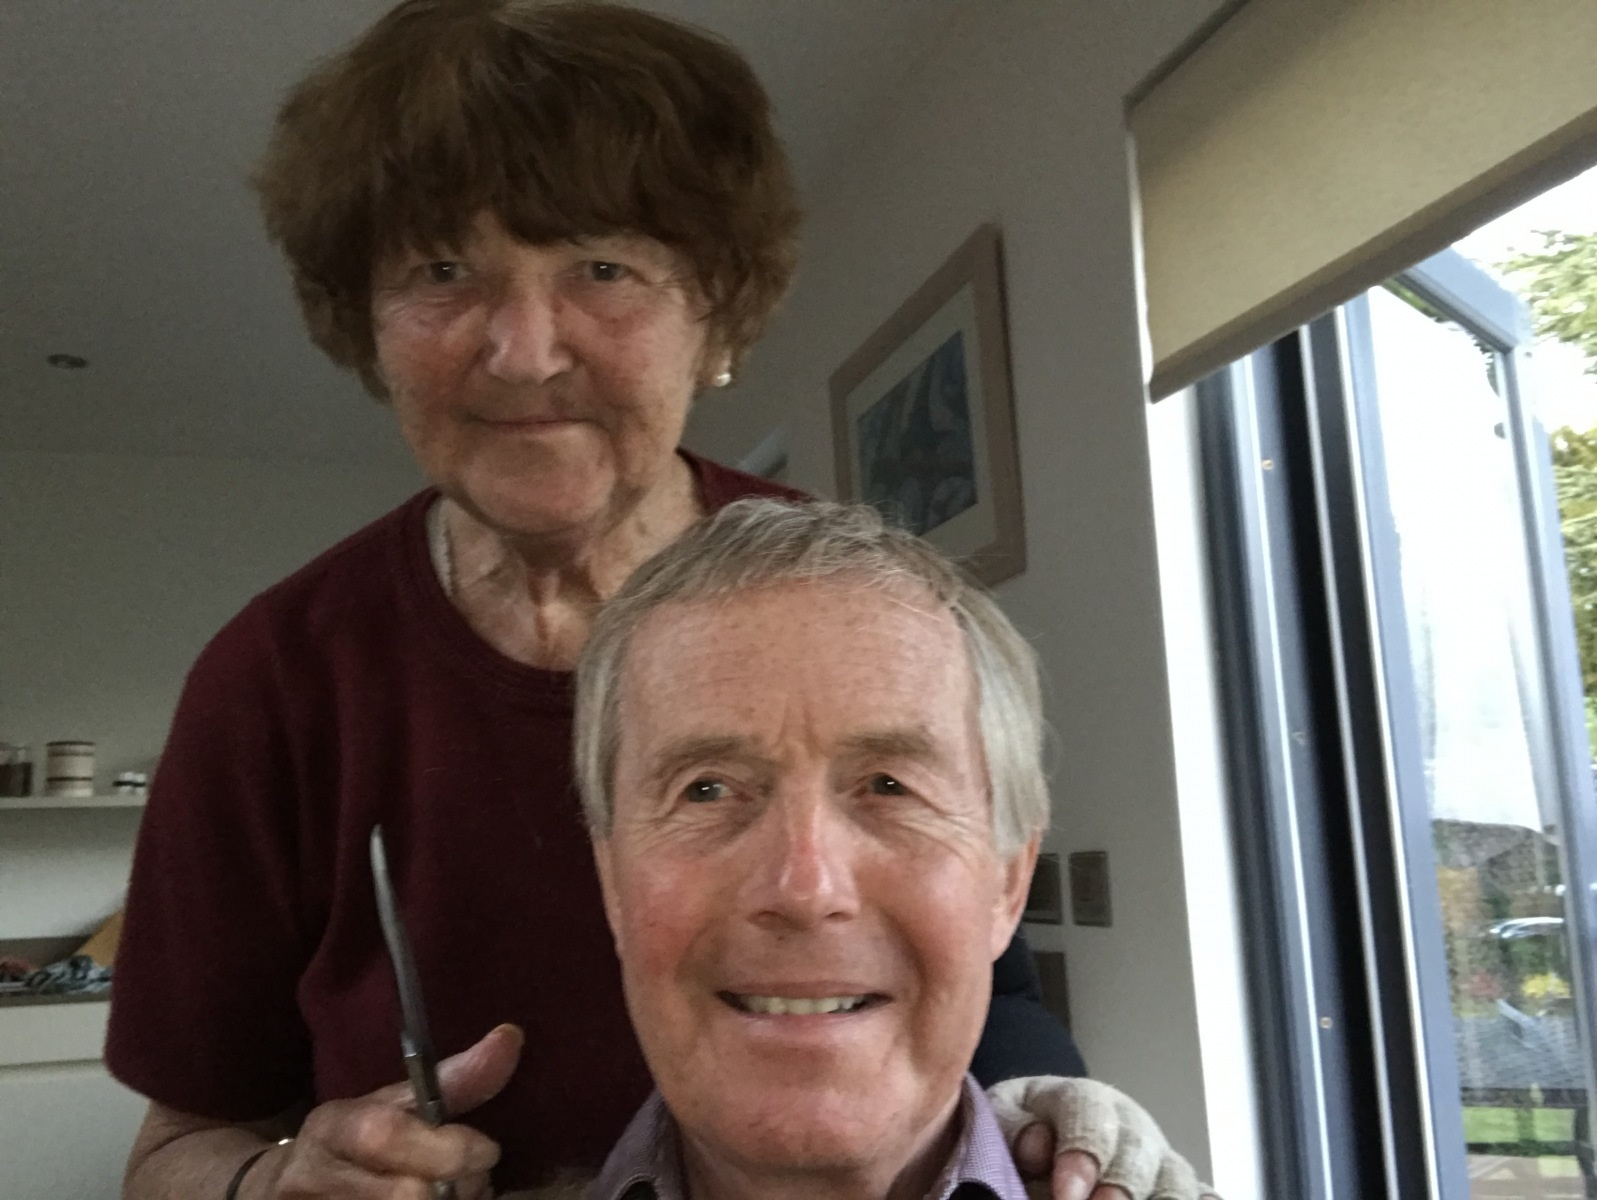 Locks off in Lockdown! David Wharton's VE Day haircut (after)